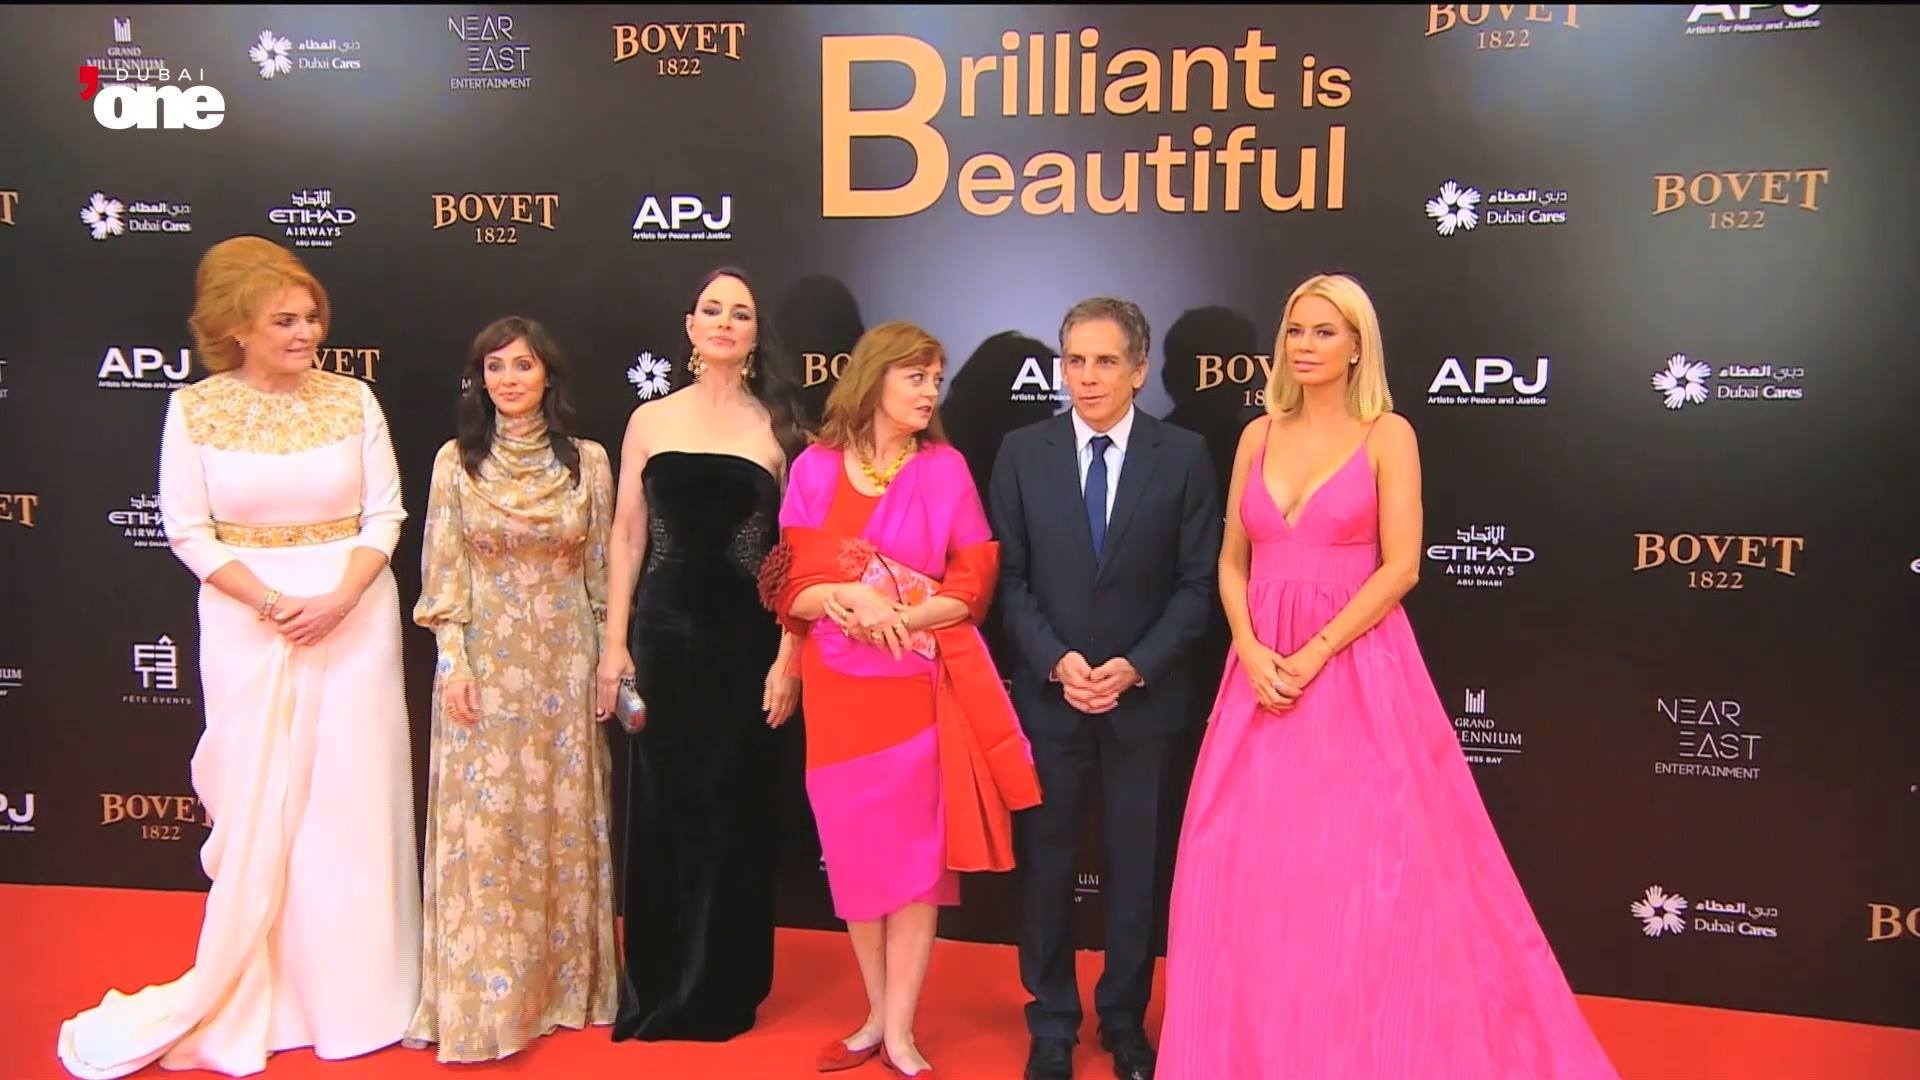 Ben Stiller talks about being human first at 'Brilliant is Beautiful' event in Dubai